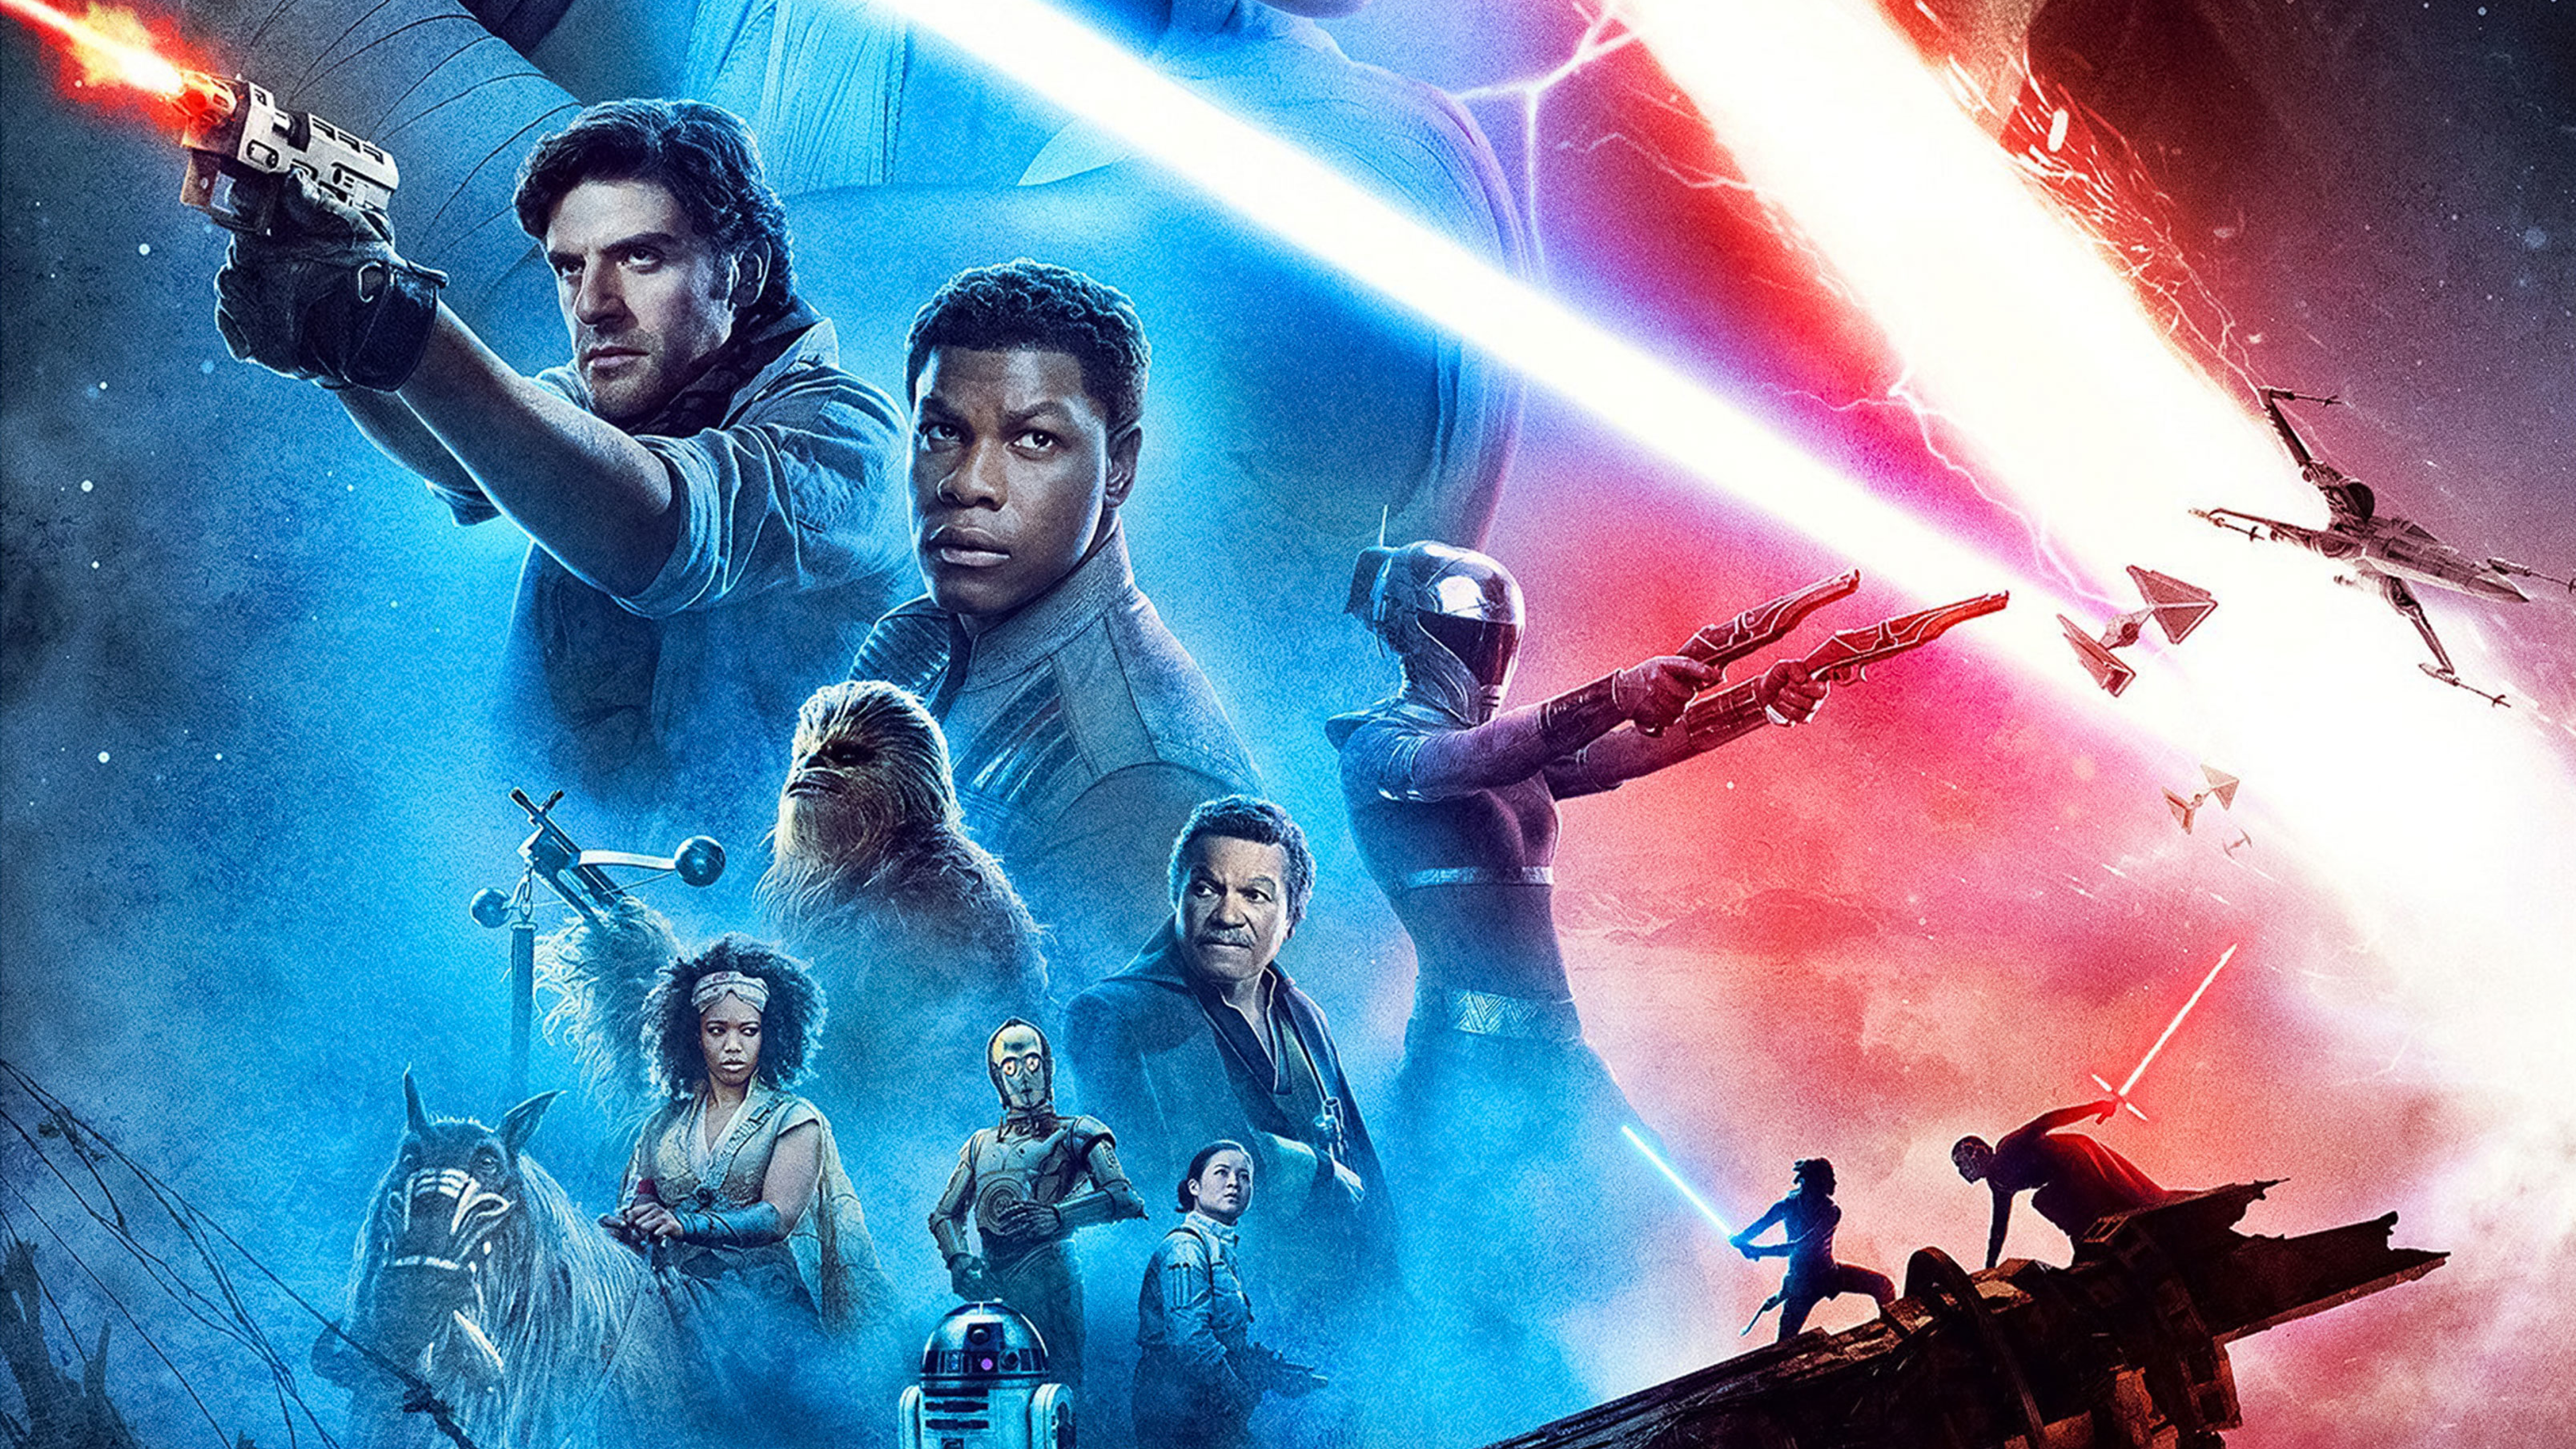 5120x2880 Star Wars 9 Poster 5k Wallpaper Hd Movies 4k Wallpapers Images Photos And Background